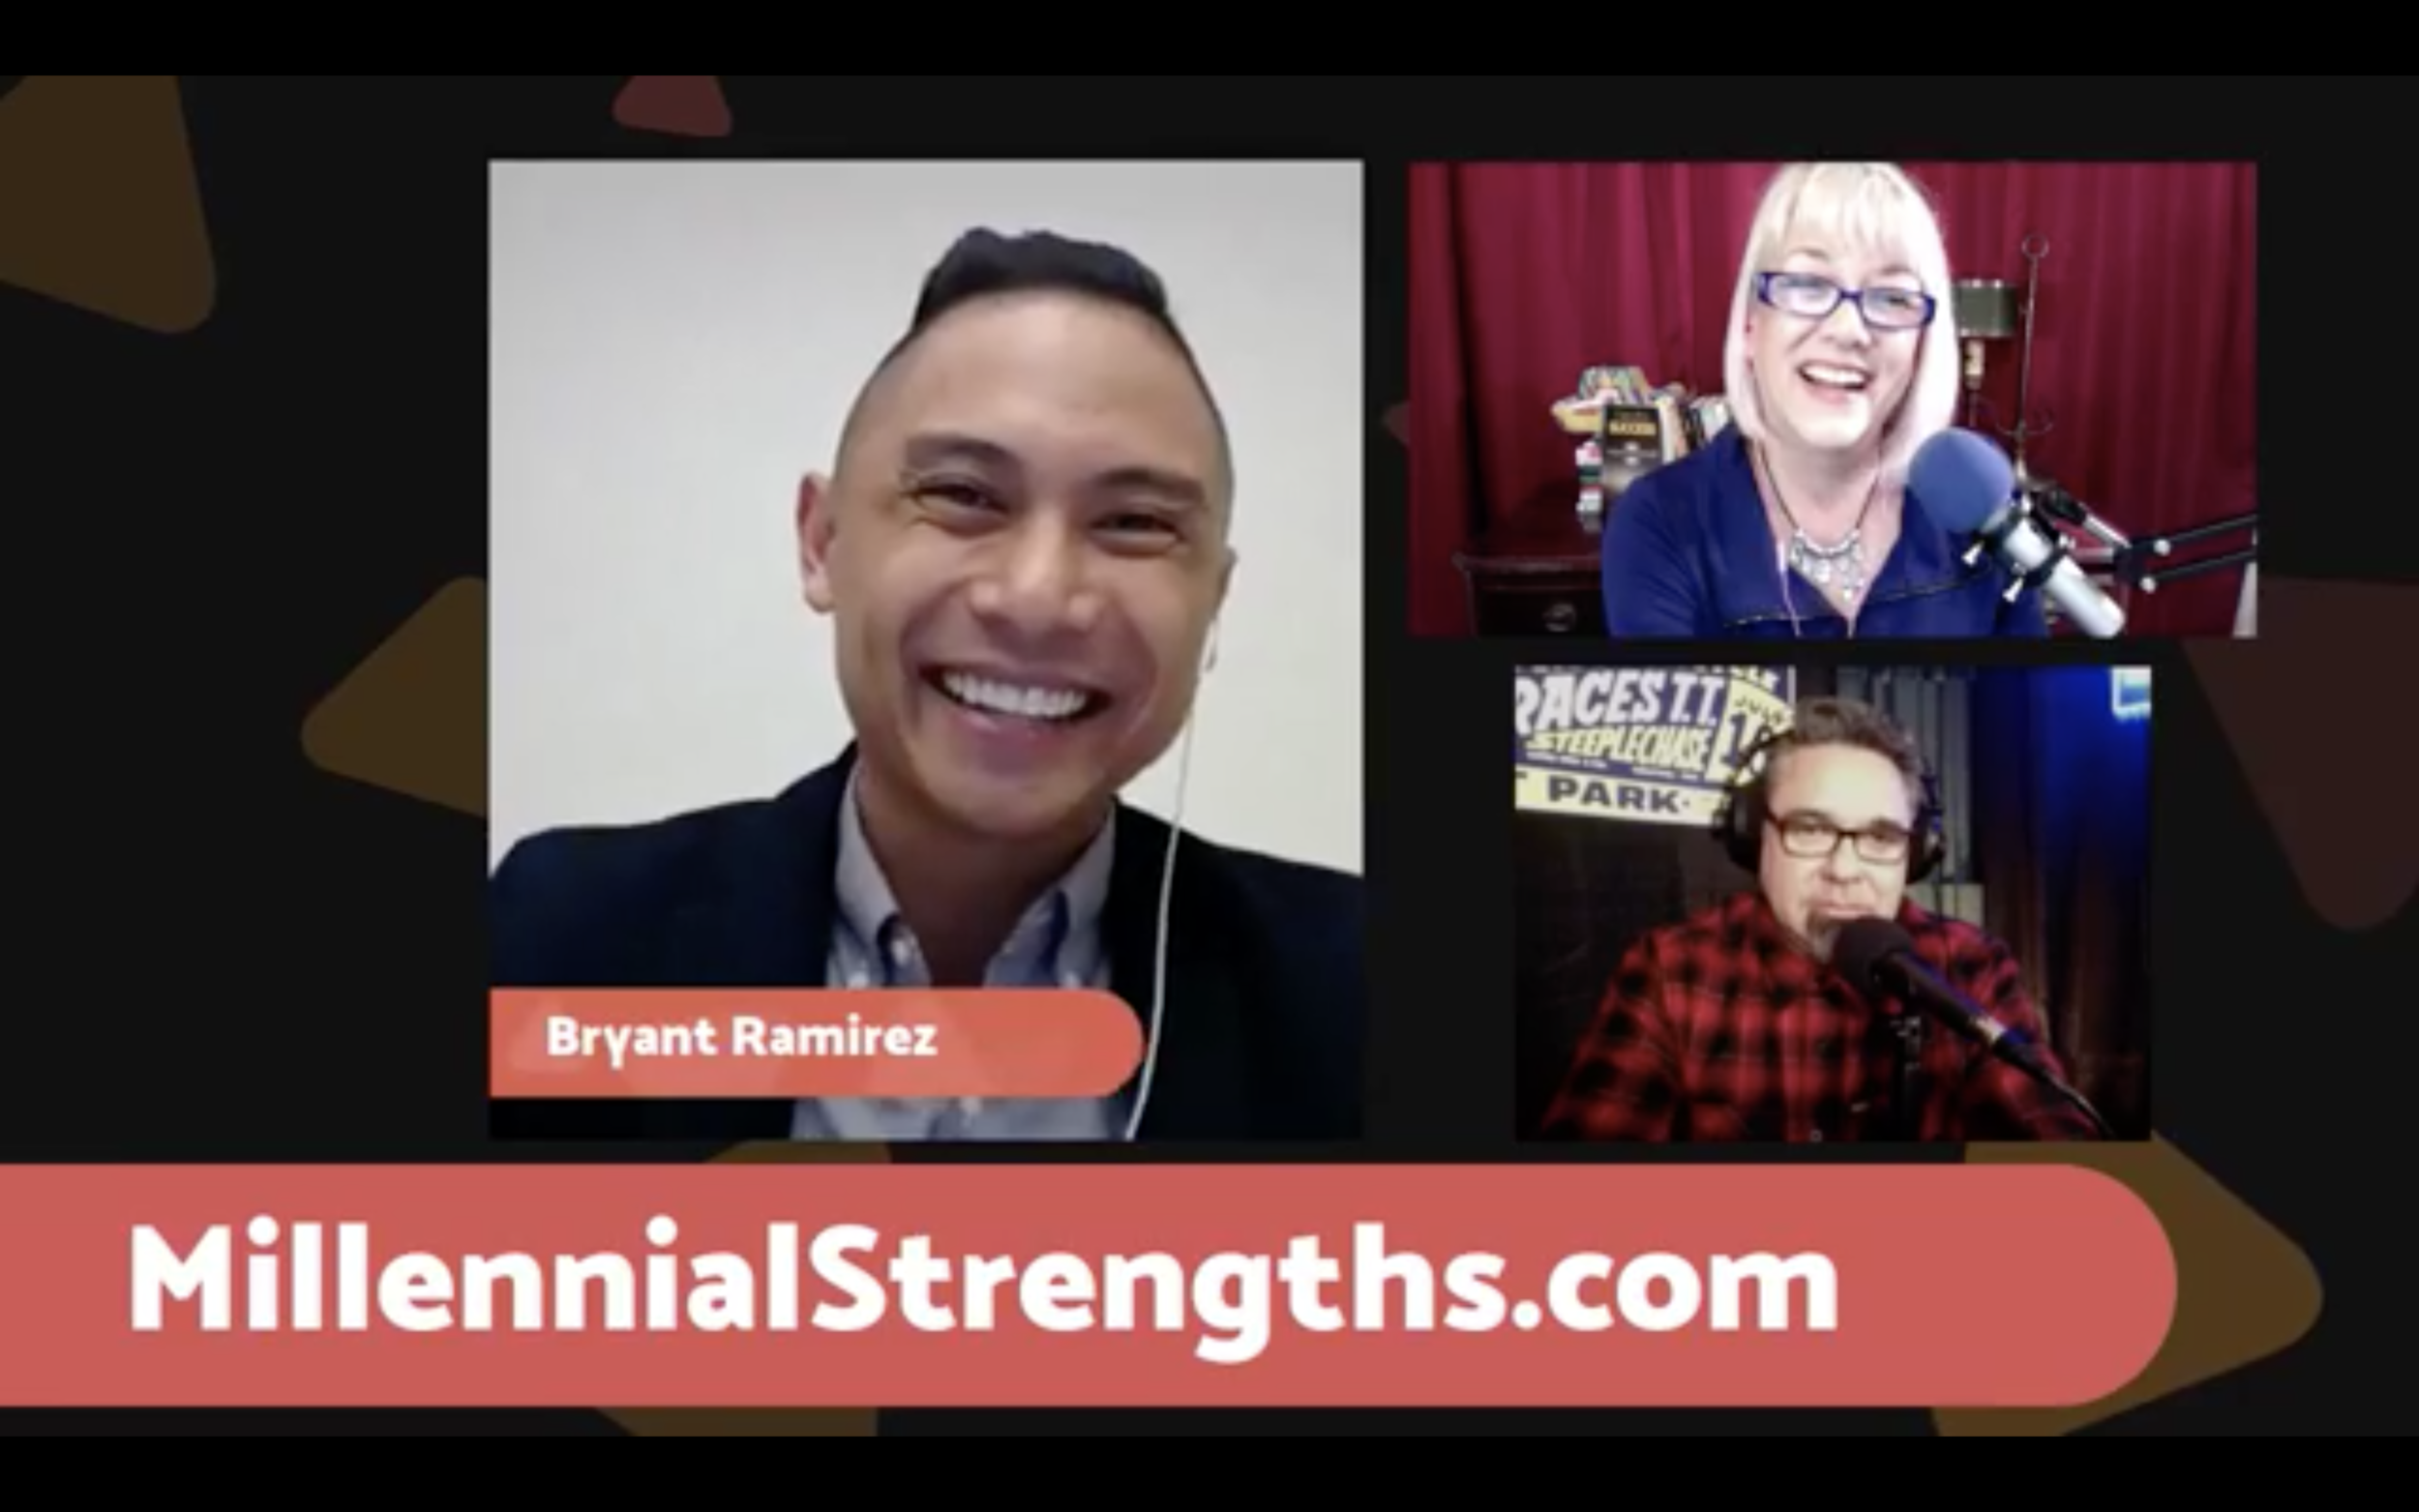 Strengths Activation